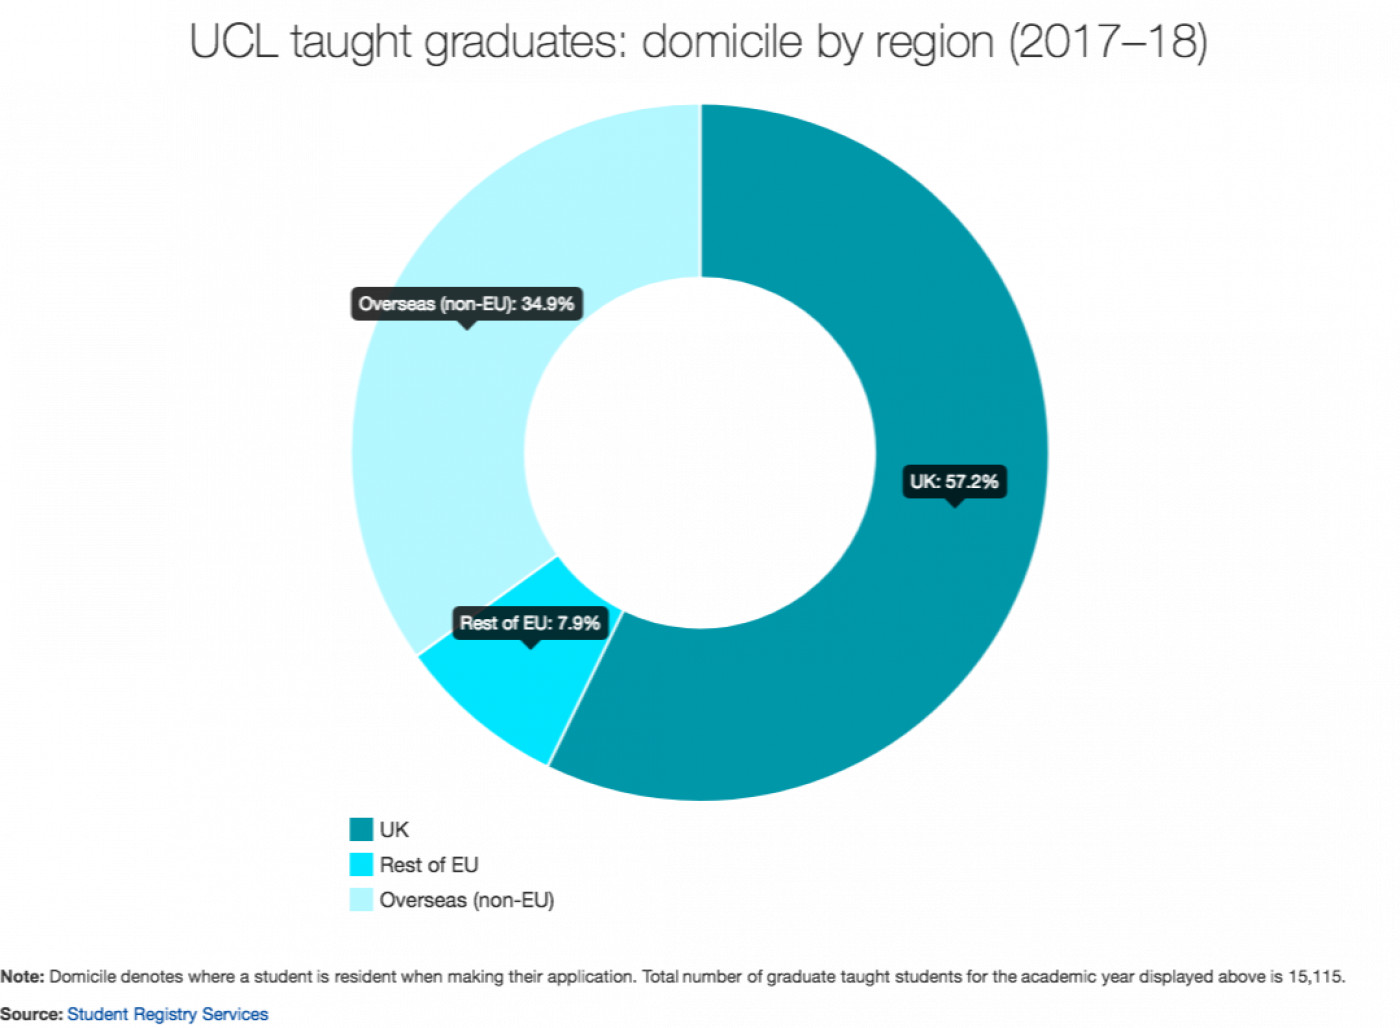 UCL graduate taught students: domicile by region